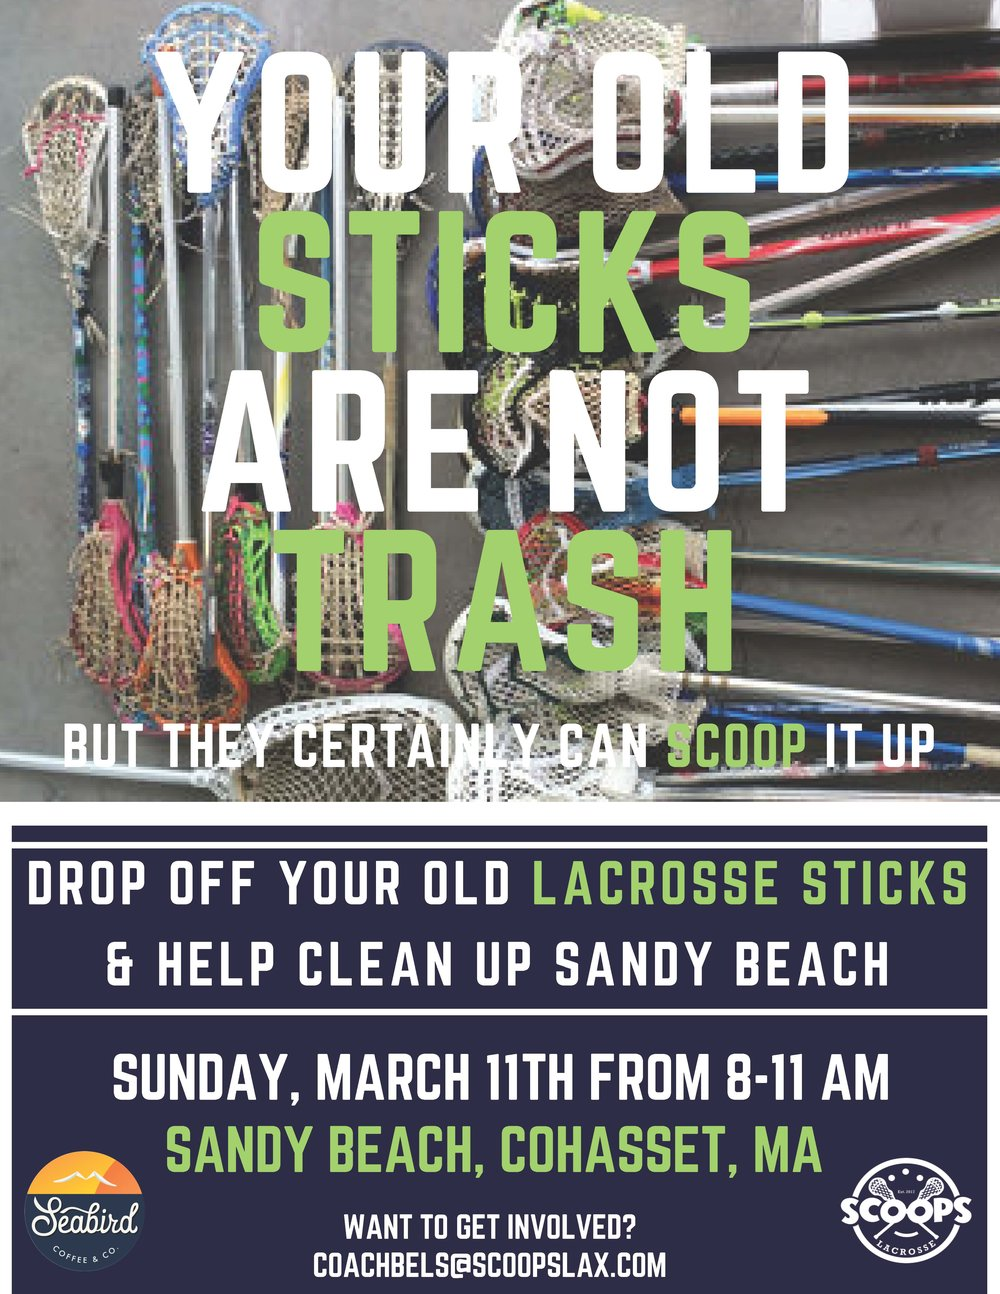 Scoops partnered with Seabird Coffee to clean up Sandy Beach in Cohasset. - Over 50 lacrosse sticks were donated and over 25 bags of trash were collected from the clean up! THanks to everyone who volunteered their time.